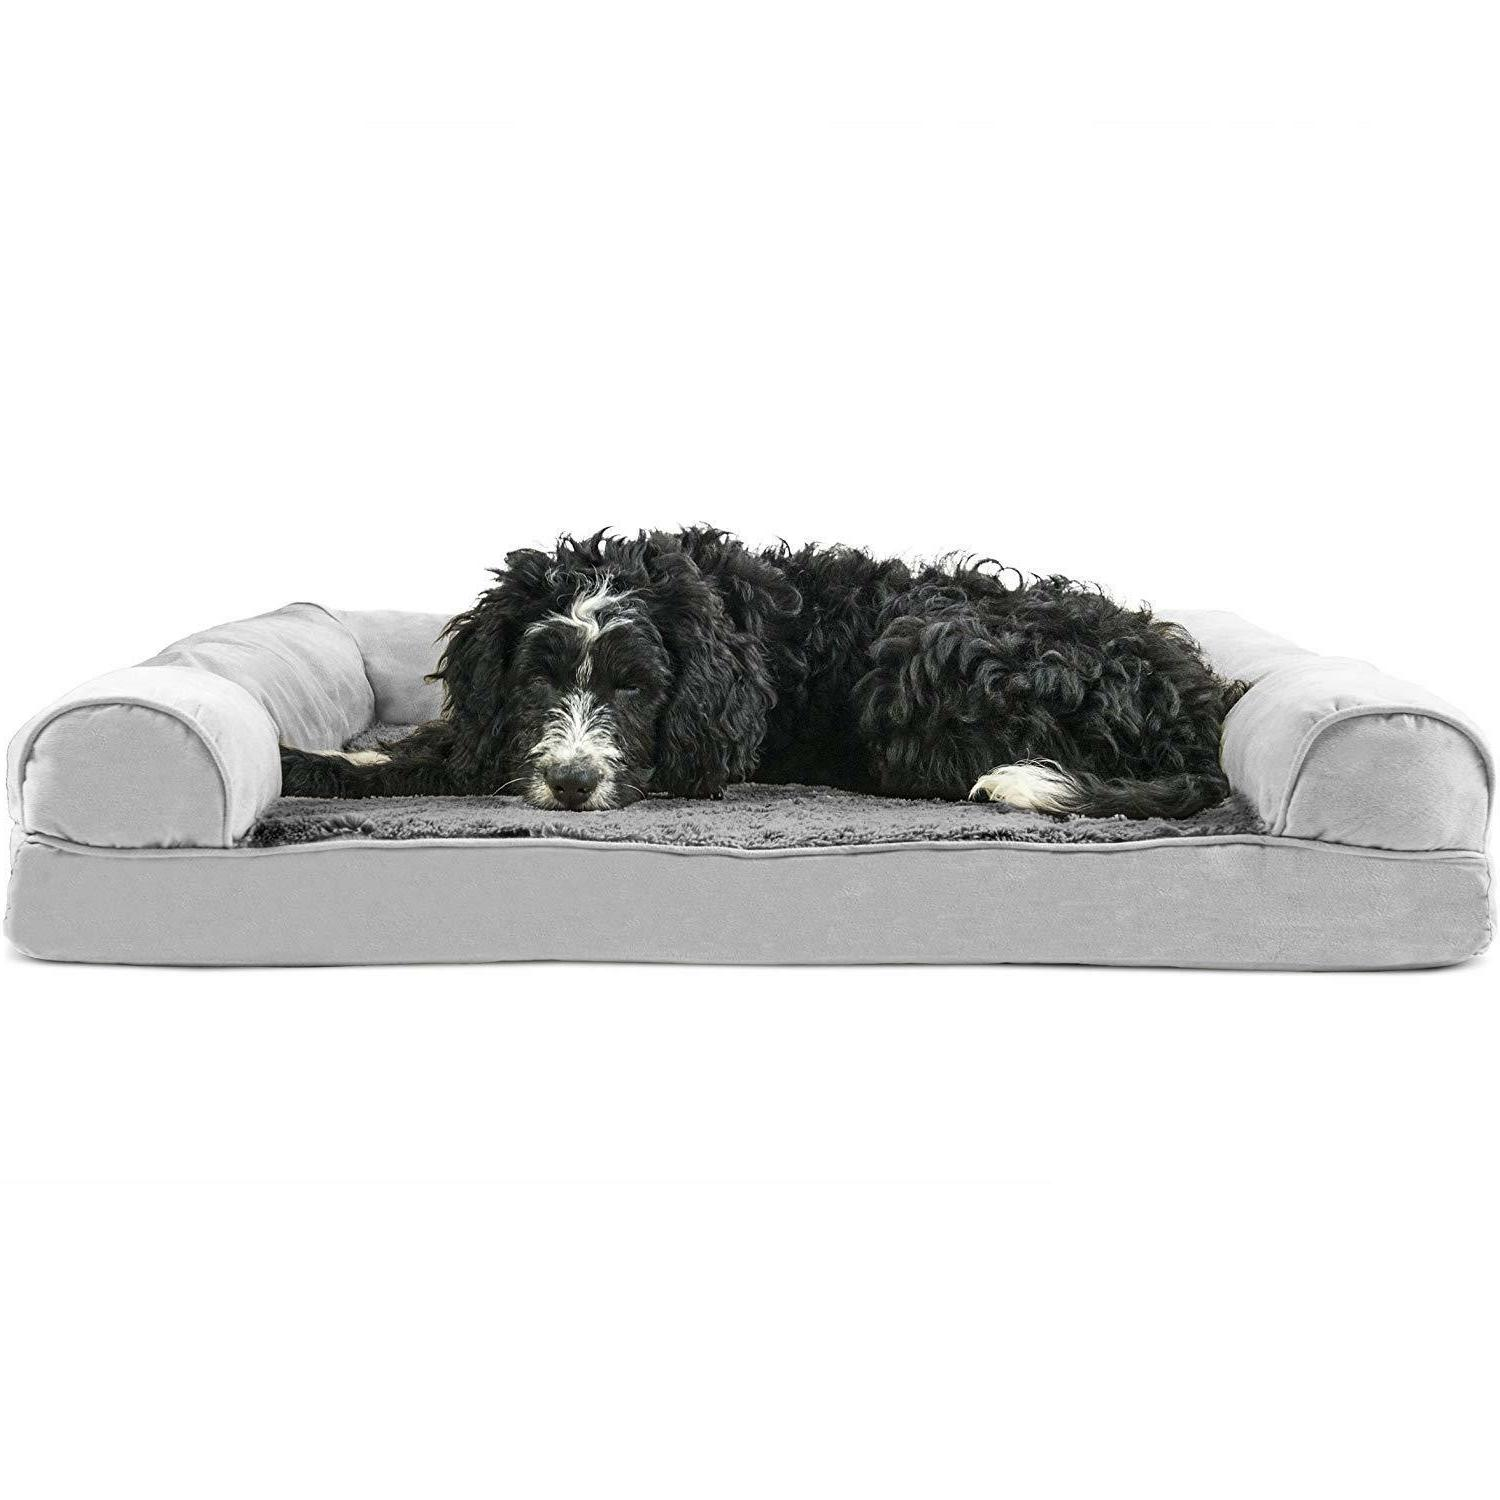 Big Dog Bed Sofa Pet Couch Furhaven Puppy Supplies Jumbo Ort